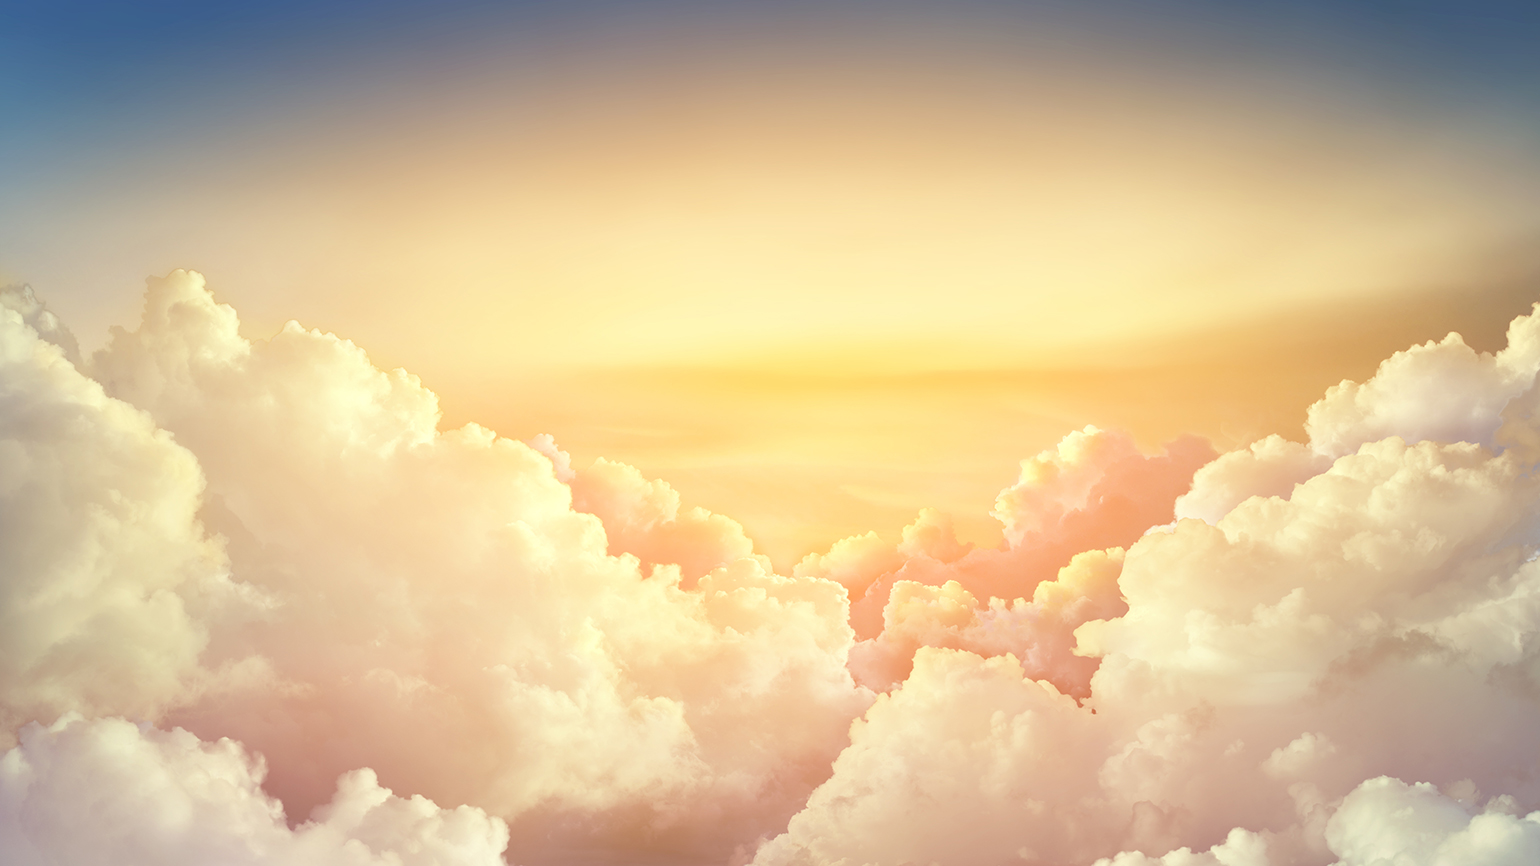 Puffy white clouds with a heavenly glow